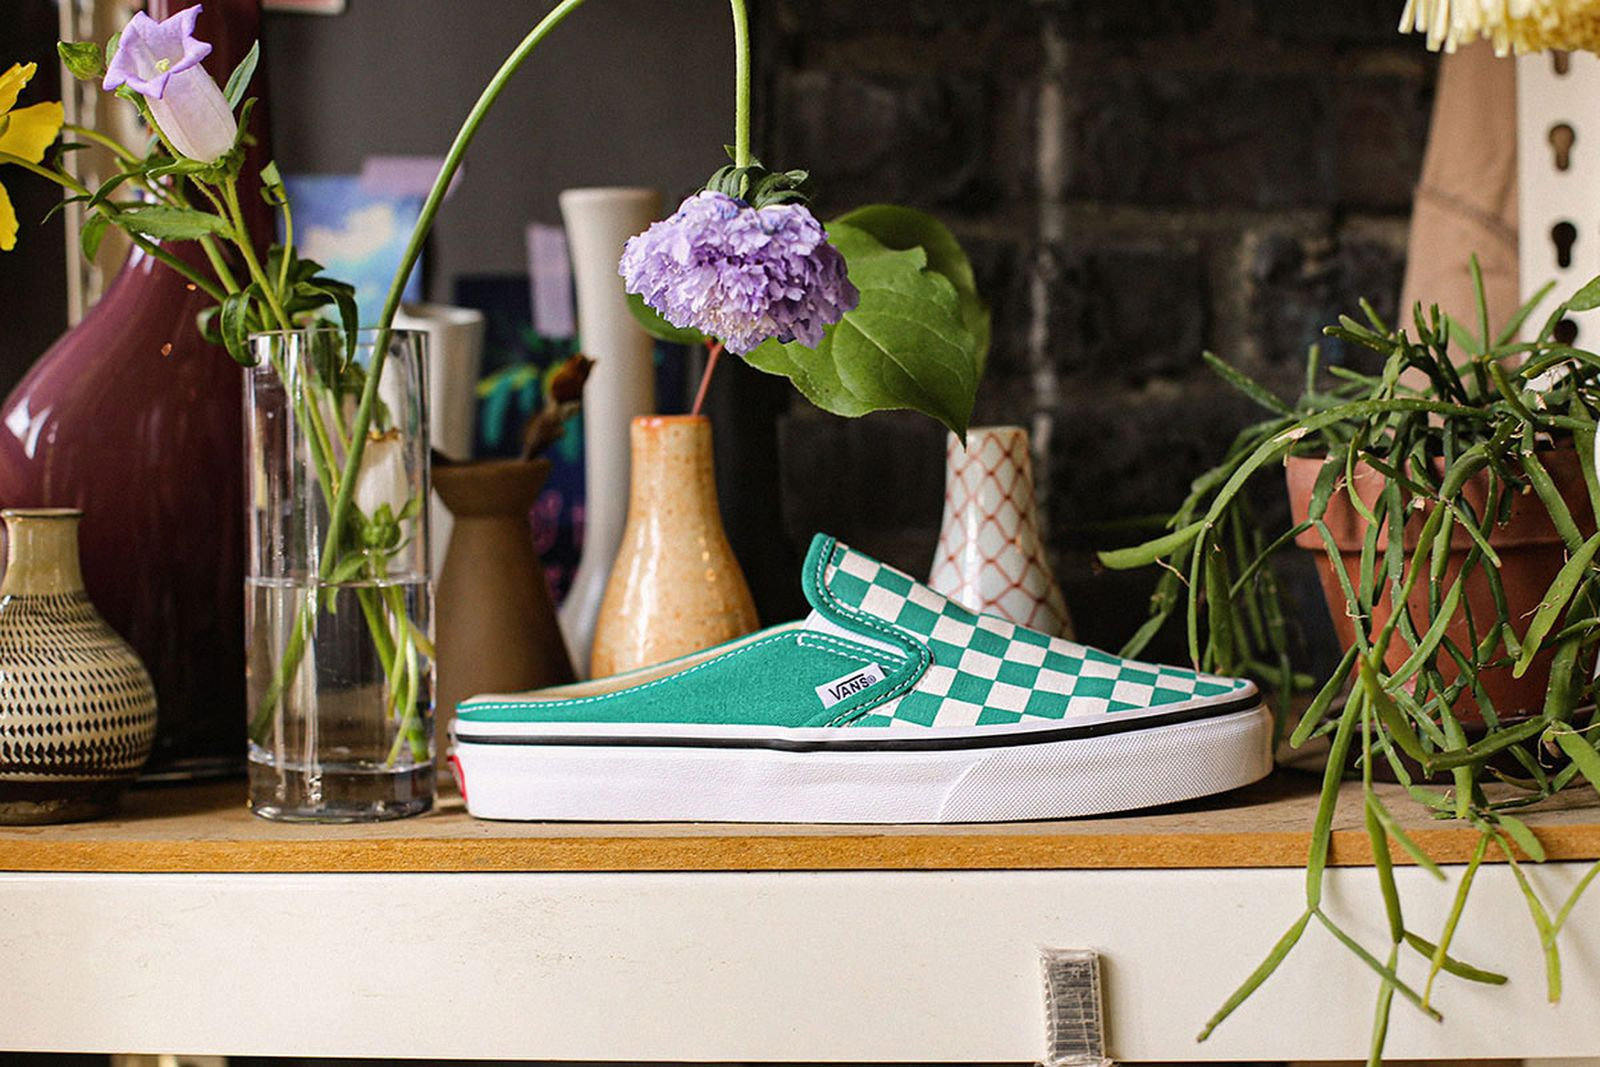 Green Vans Mule Slip-On with checkerboard pattern